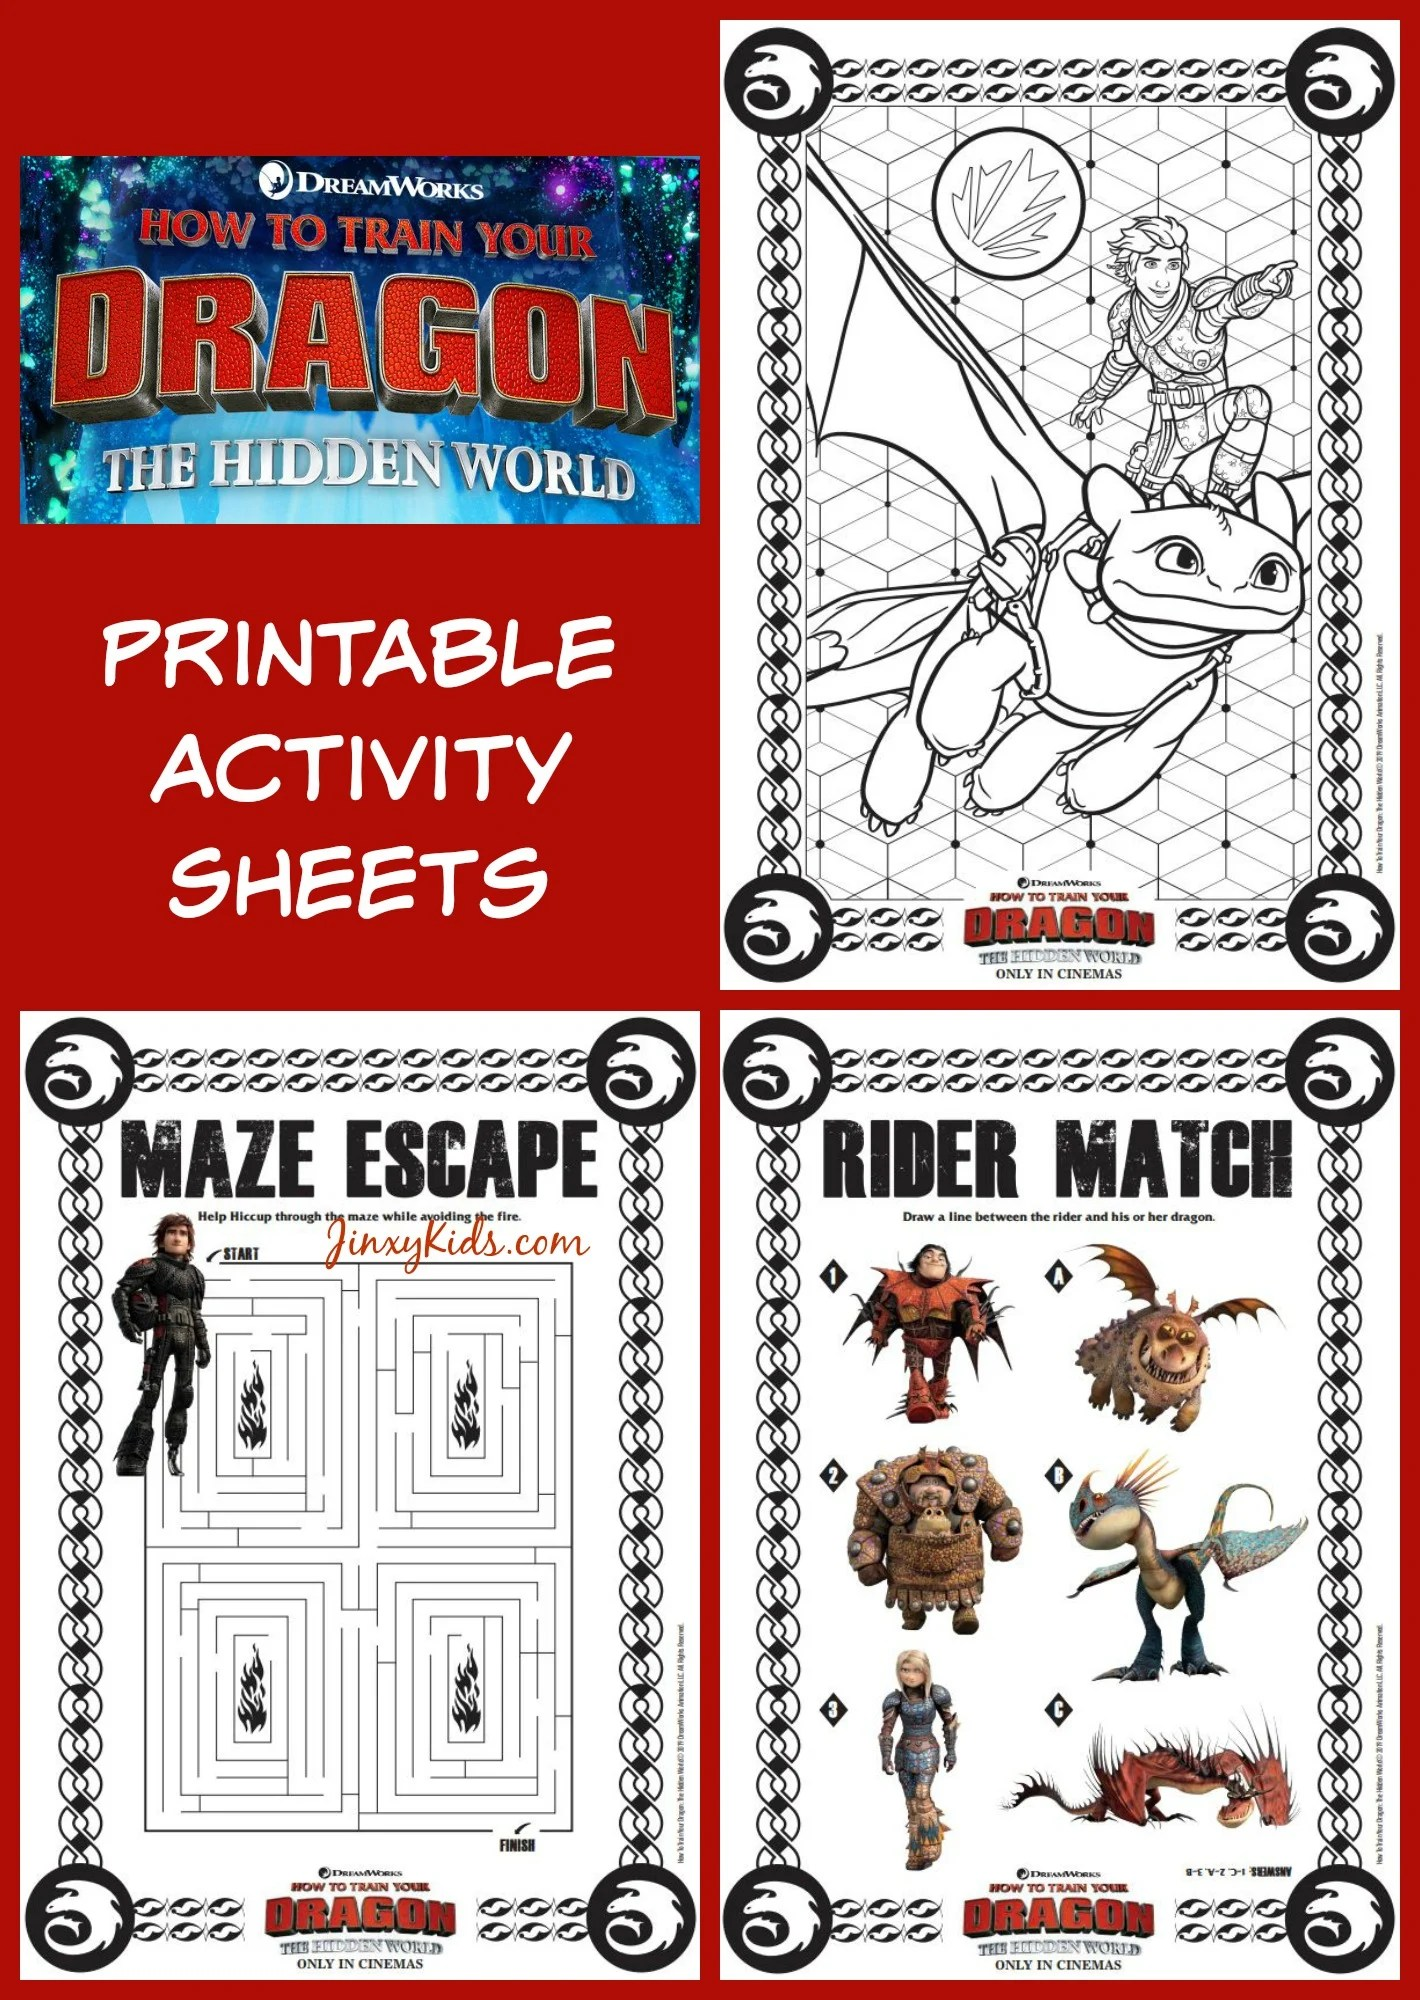 How To Train Your Dragon Printable Activity Sheets